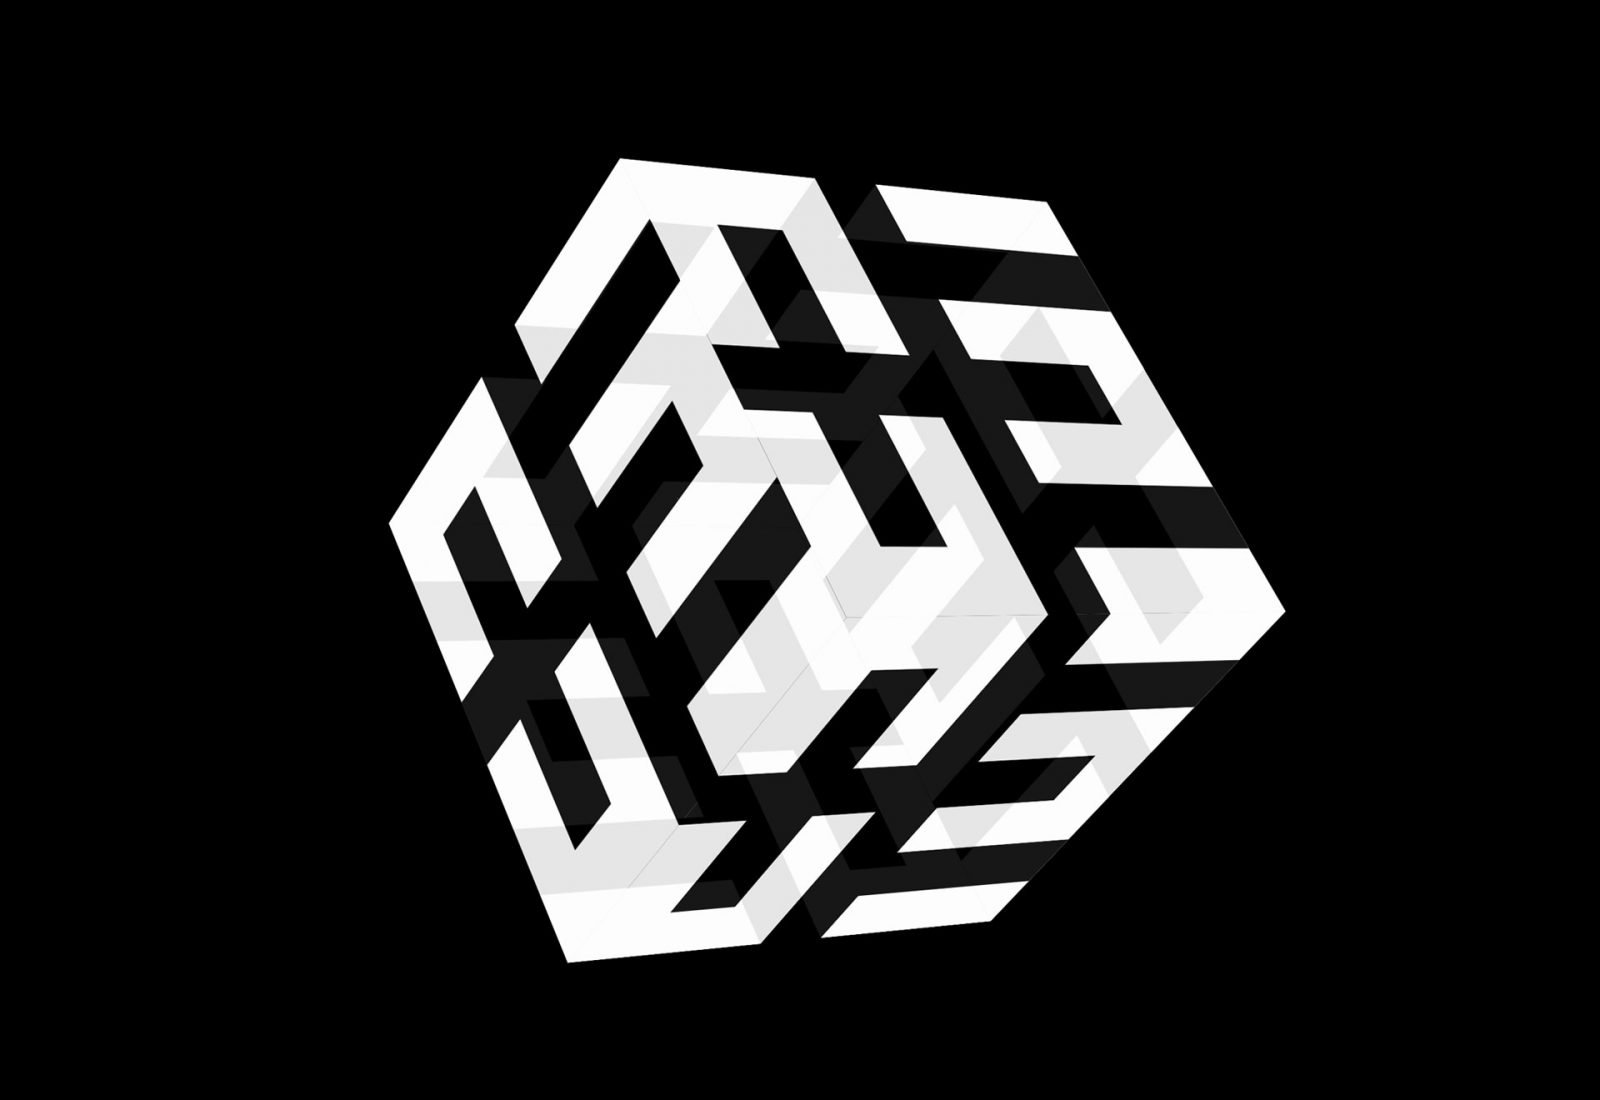 Logocube - An experiment with 3D animation using CSS only